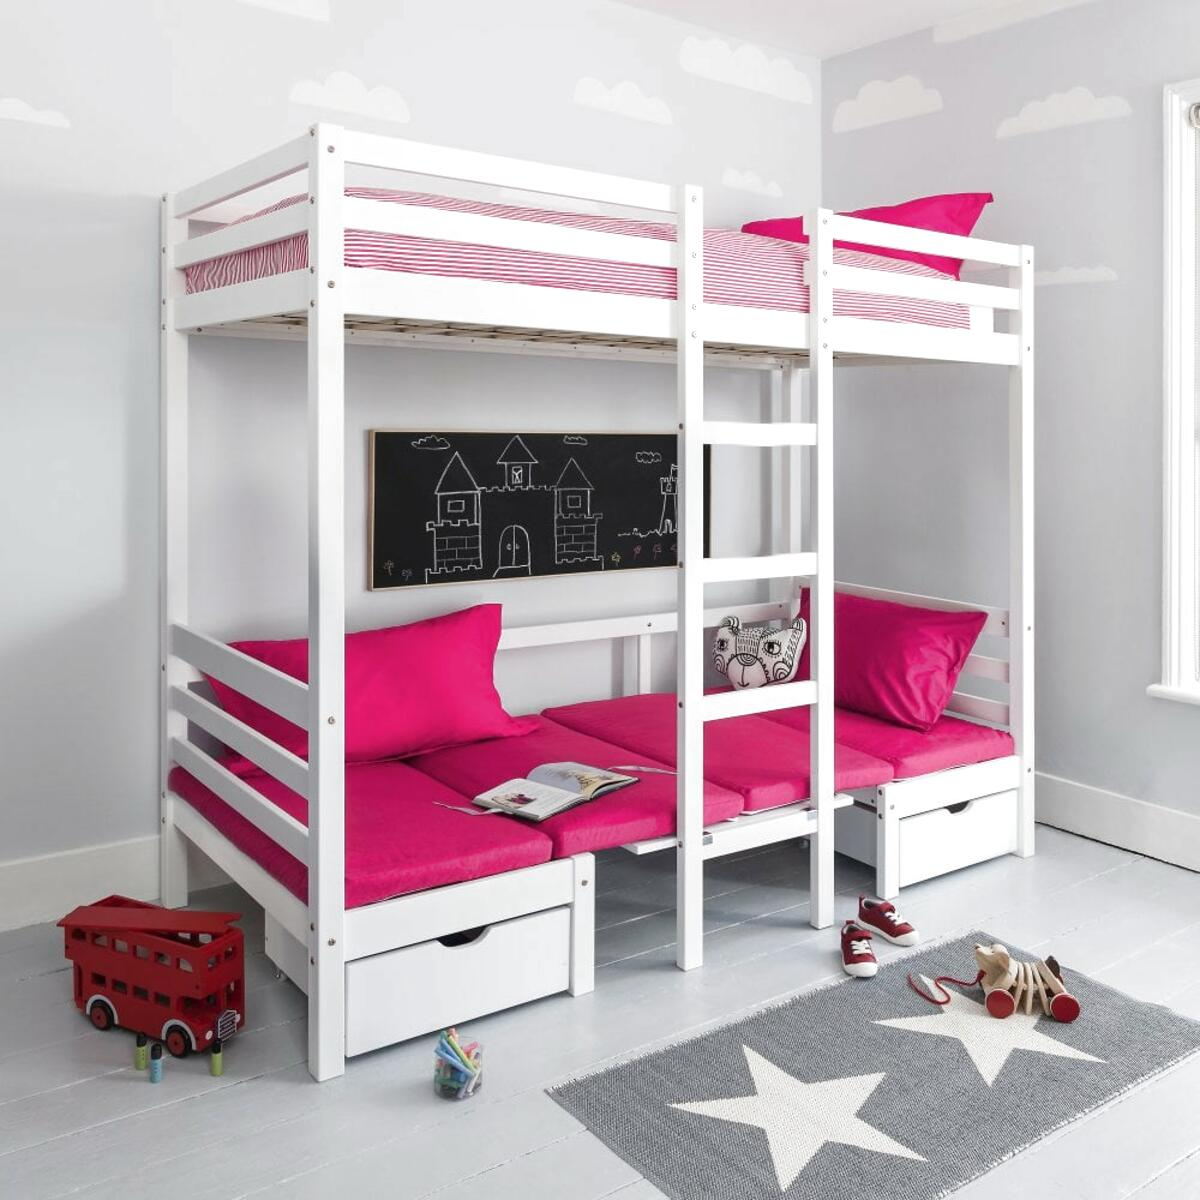 pink bunk beds for sale